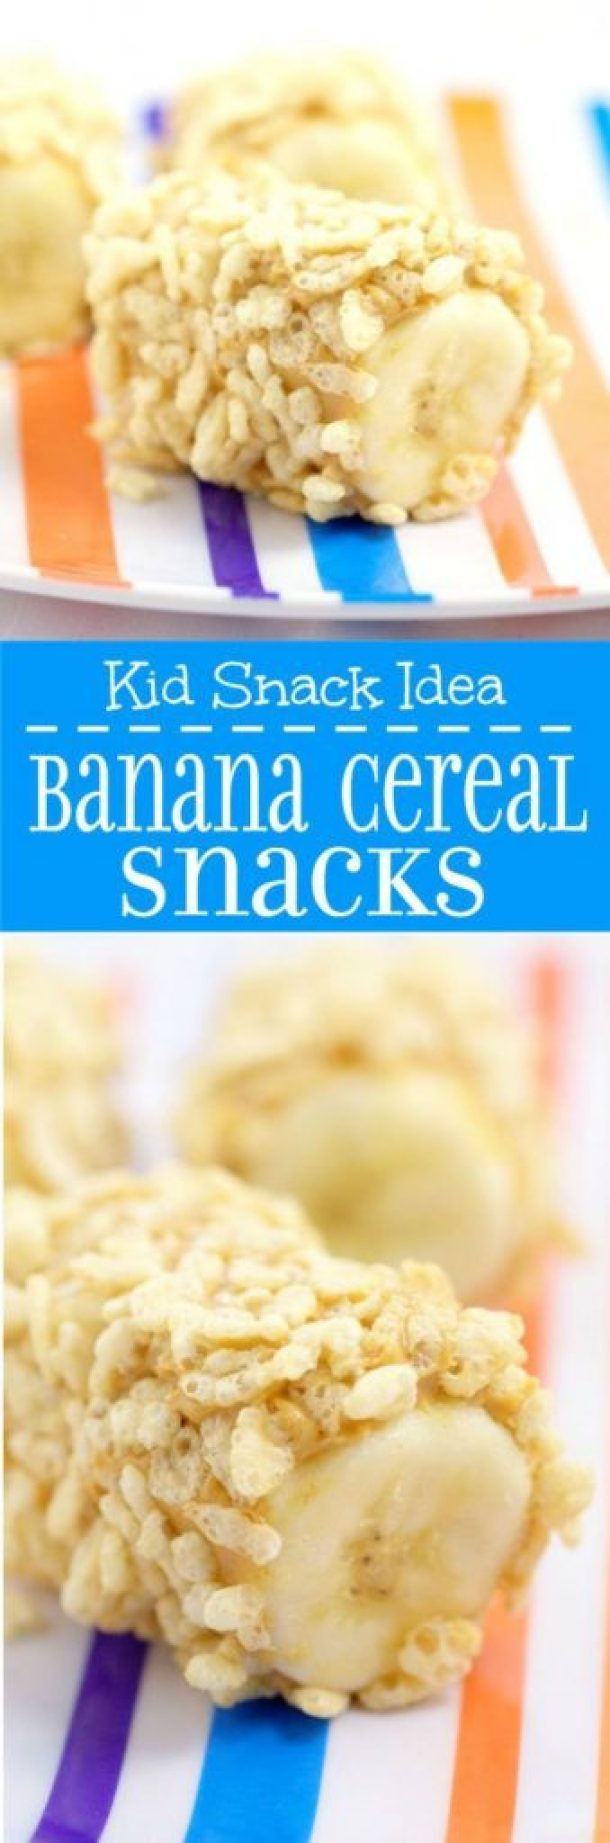 Healthy Snacks Recipes - Banana Cereal Snacks - perfect for after school or before a workout - Recipe via The Gracious Wife